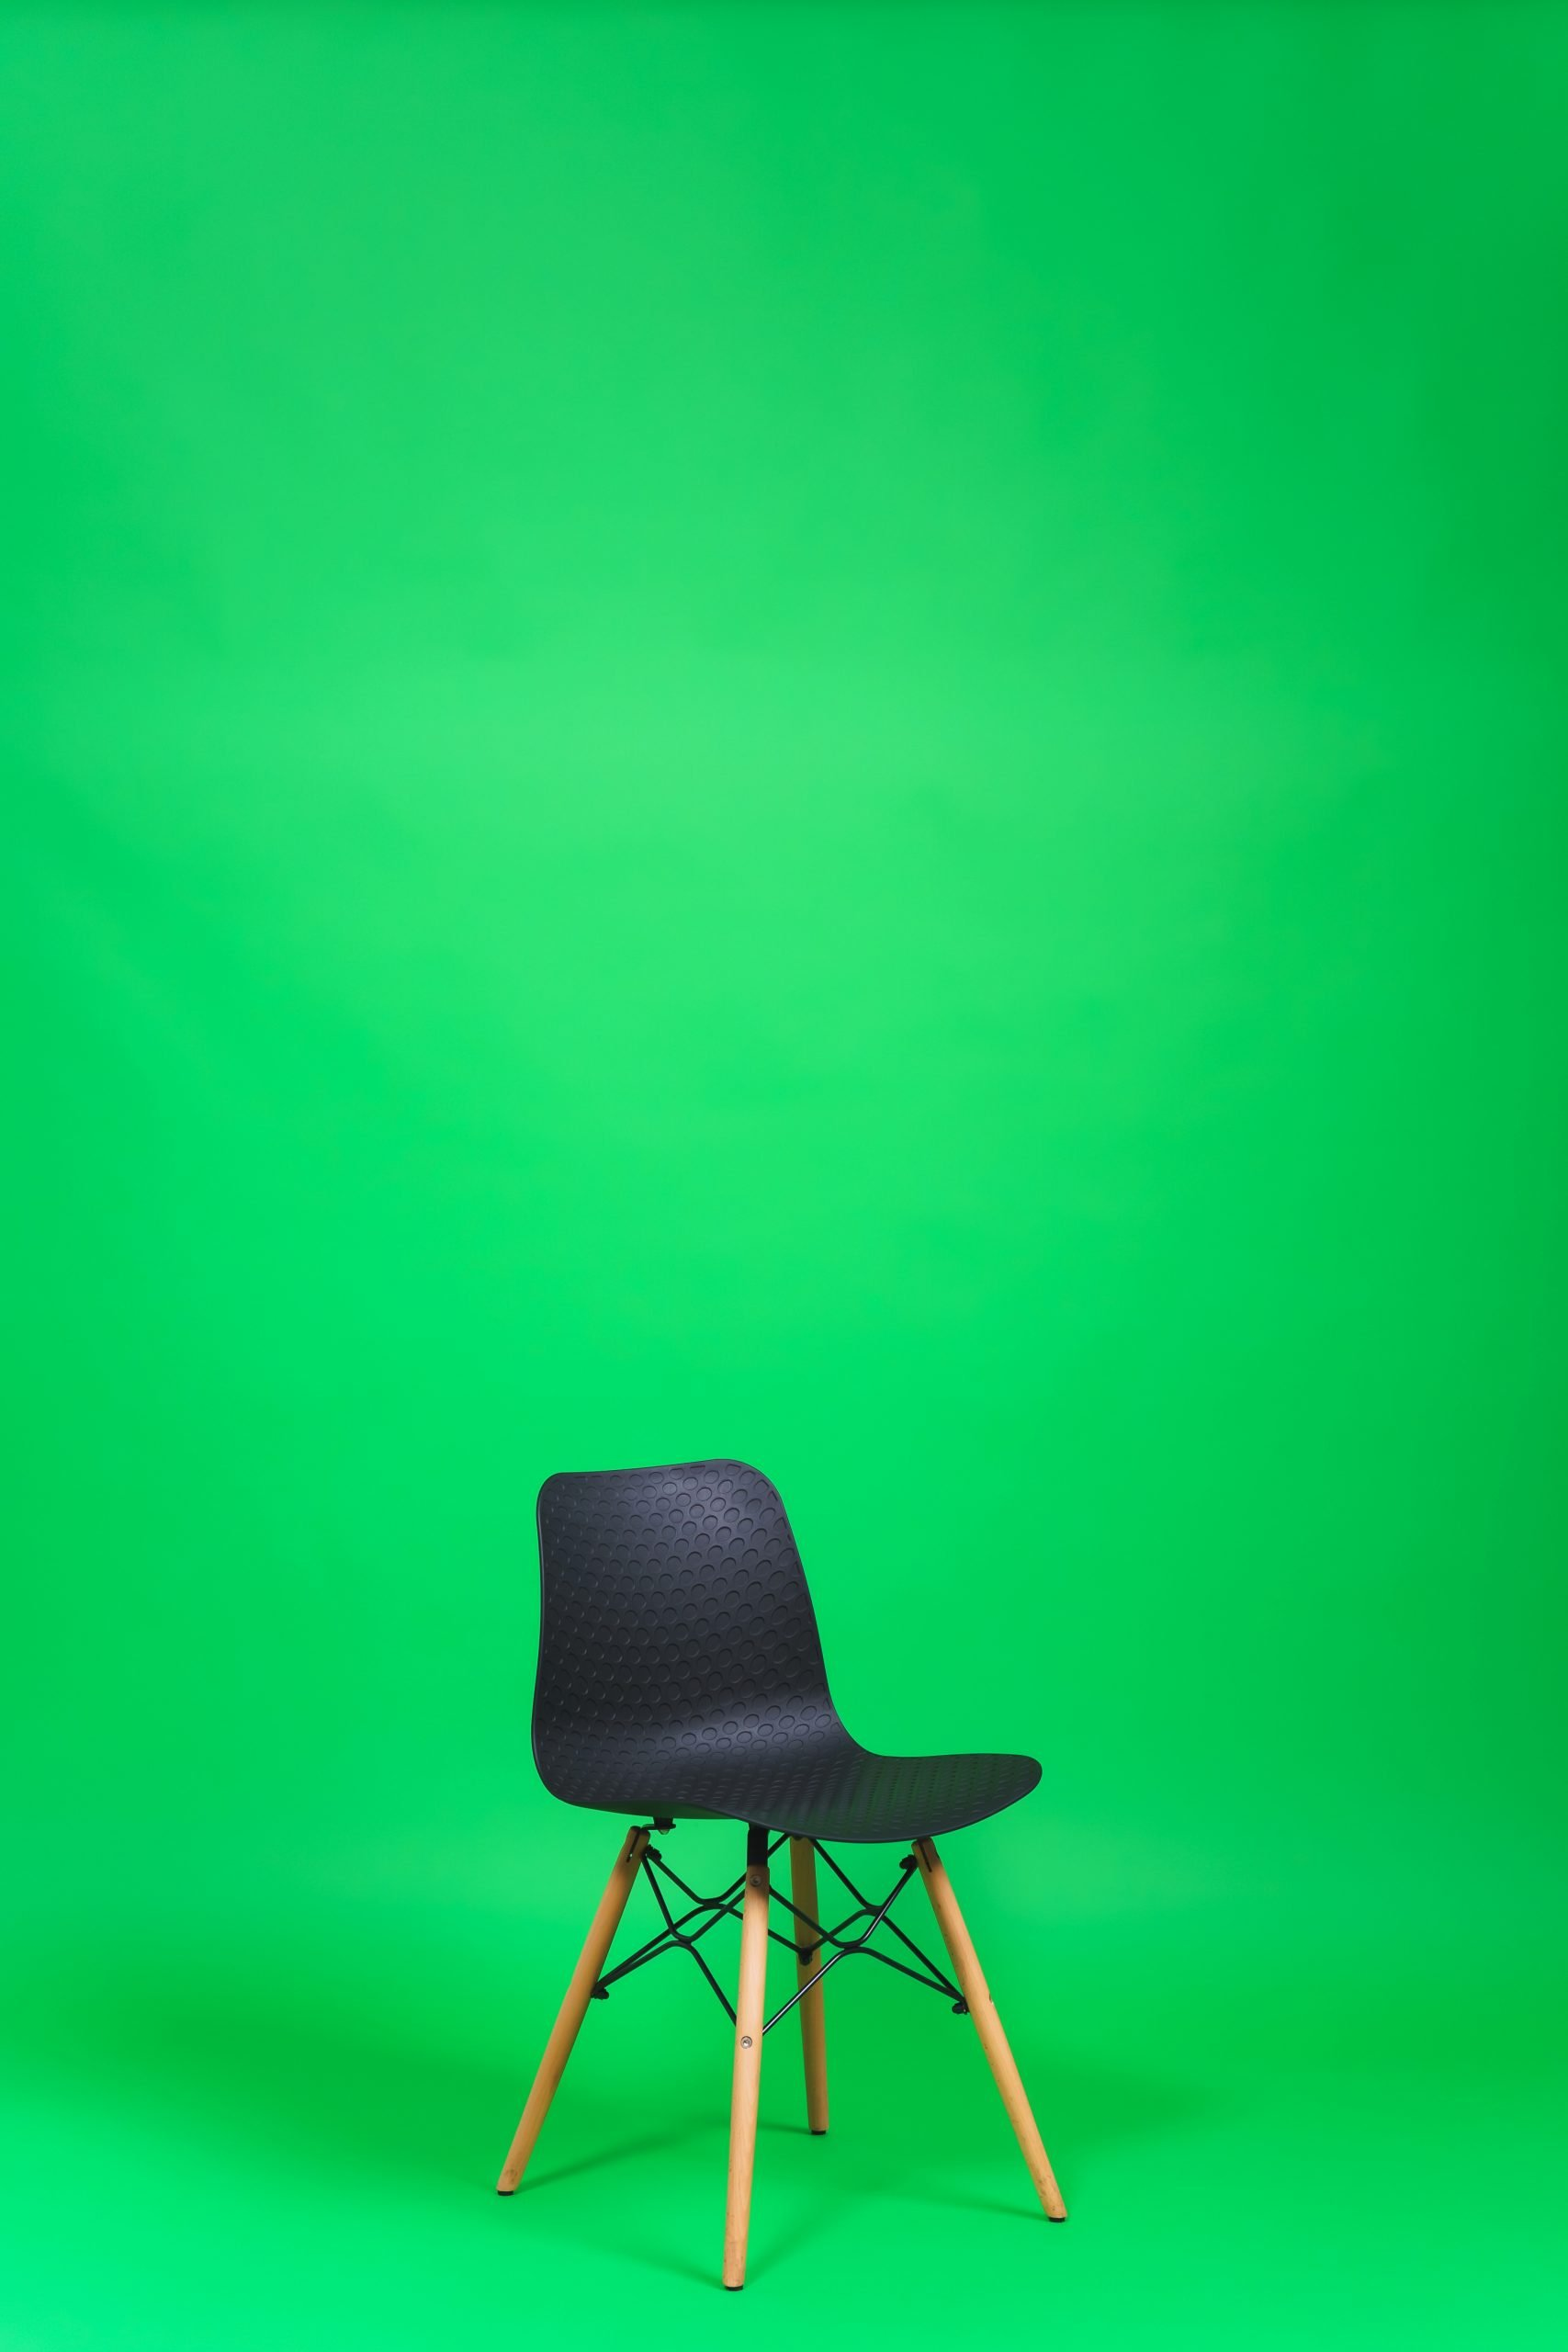 Green Screening |Corporate Video Production | On Point Video